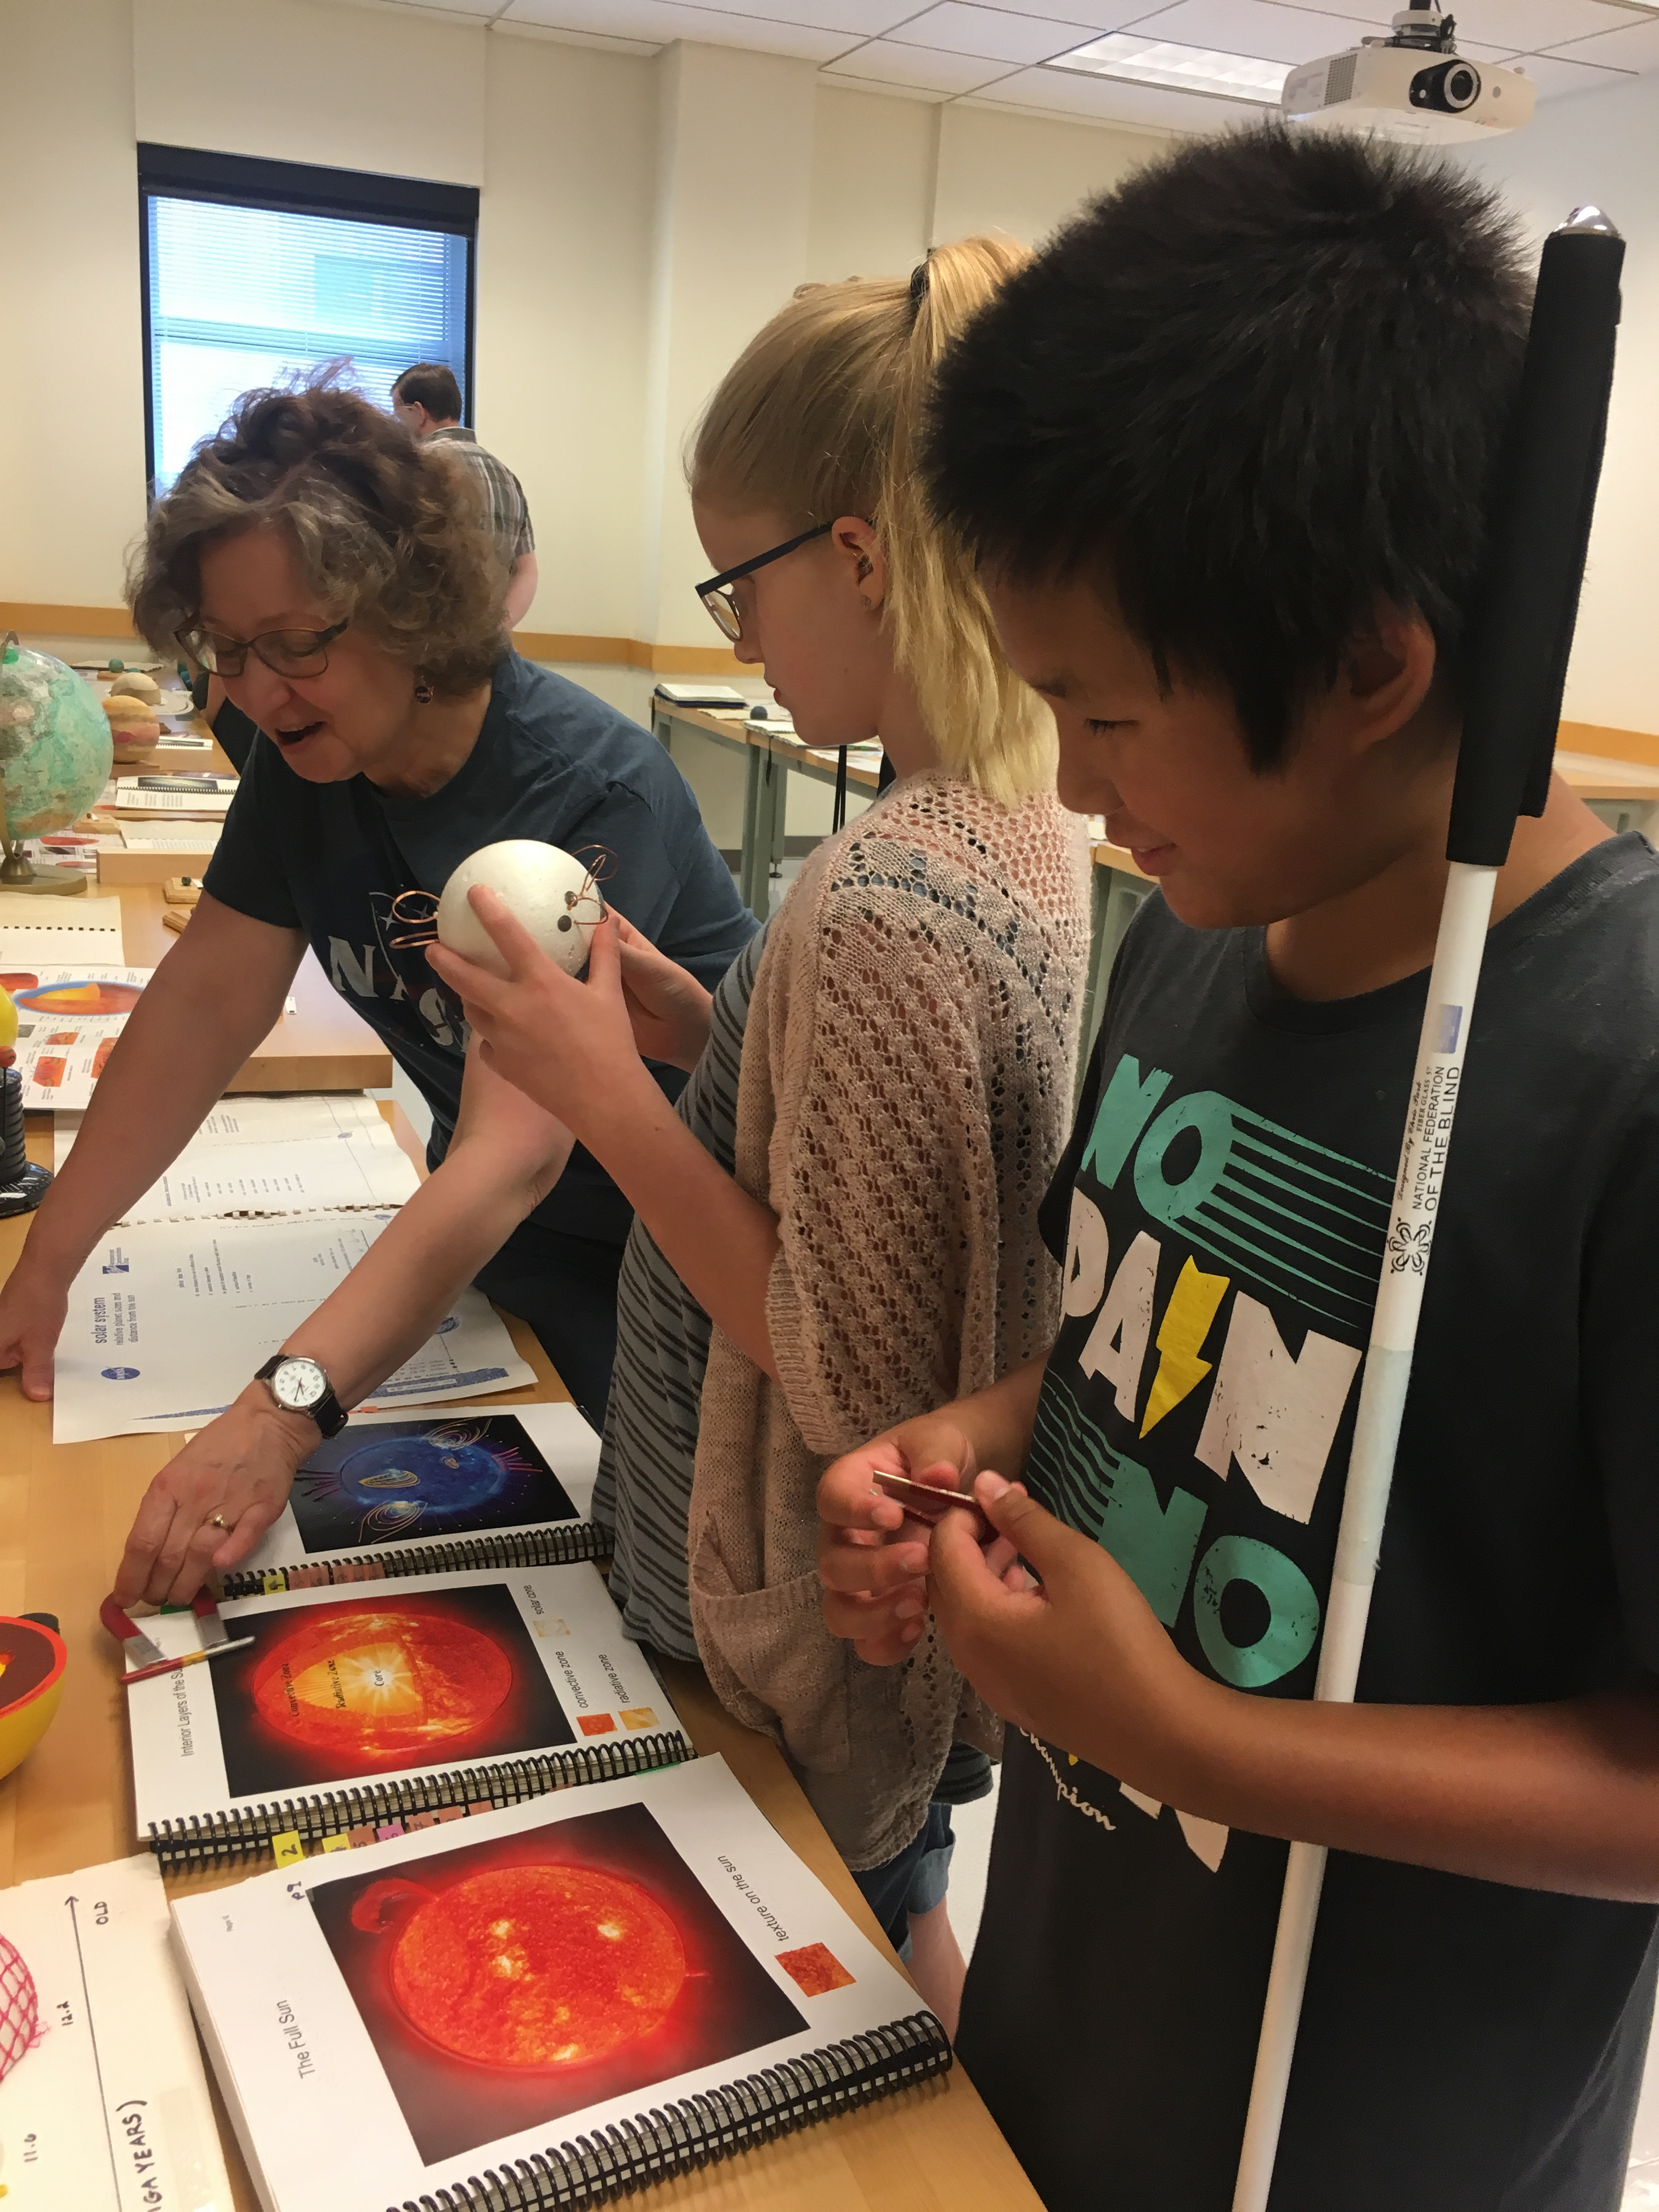 Two youth patrons explore tactile models of the sun and its solar winds at the UW Planetarium.